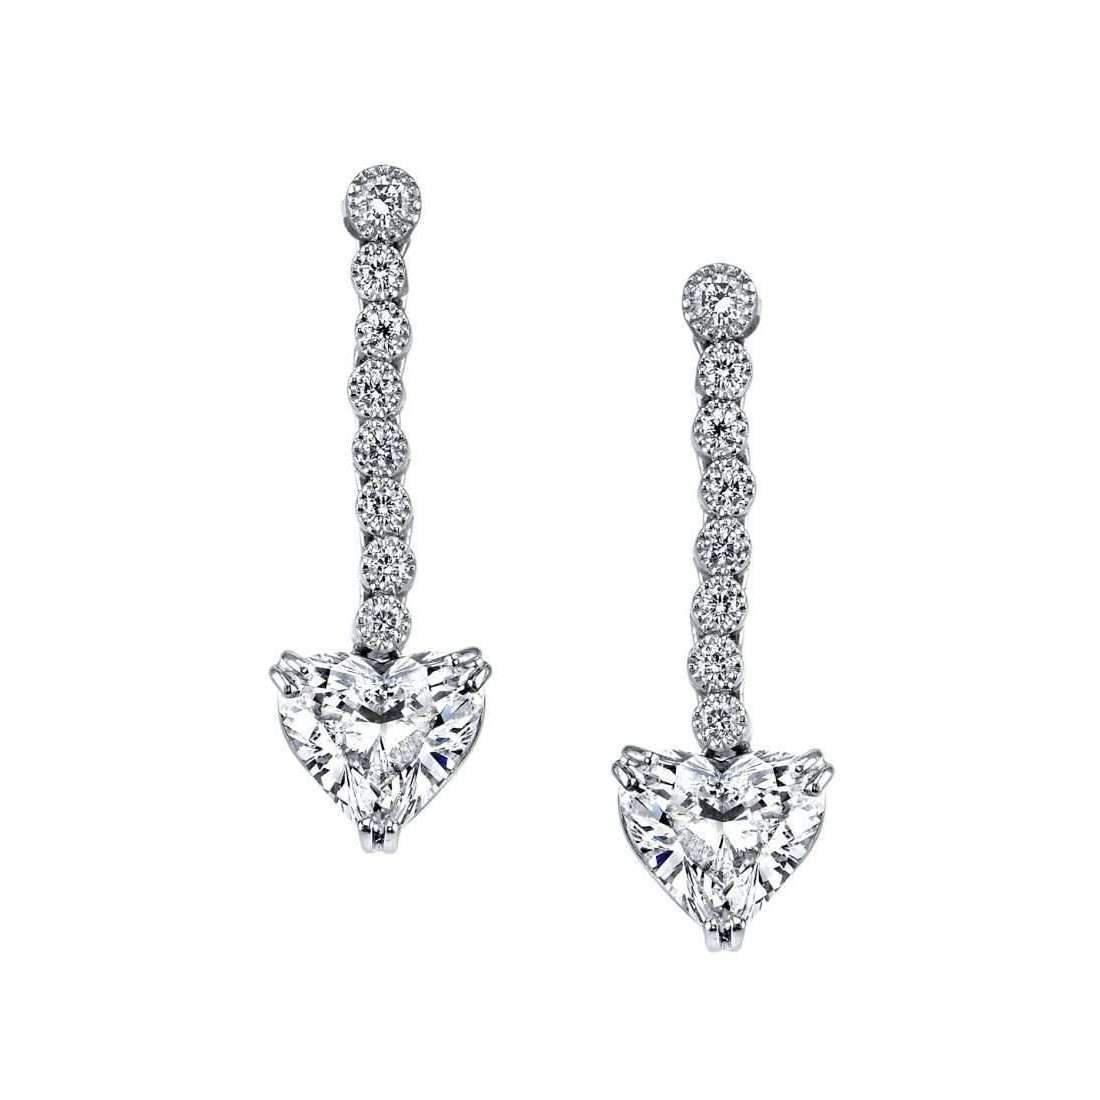 Harry Kotlar Alternating Hearts & Cushion Cut diamond Drop Earrings 1matMyi4